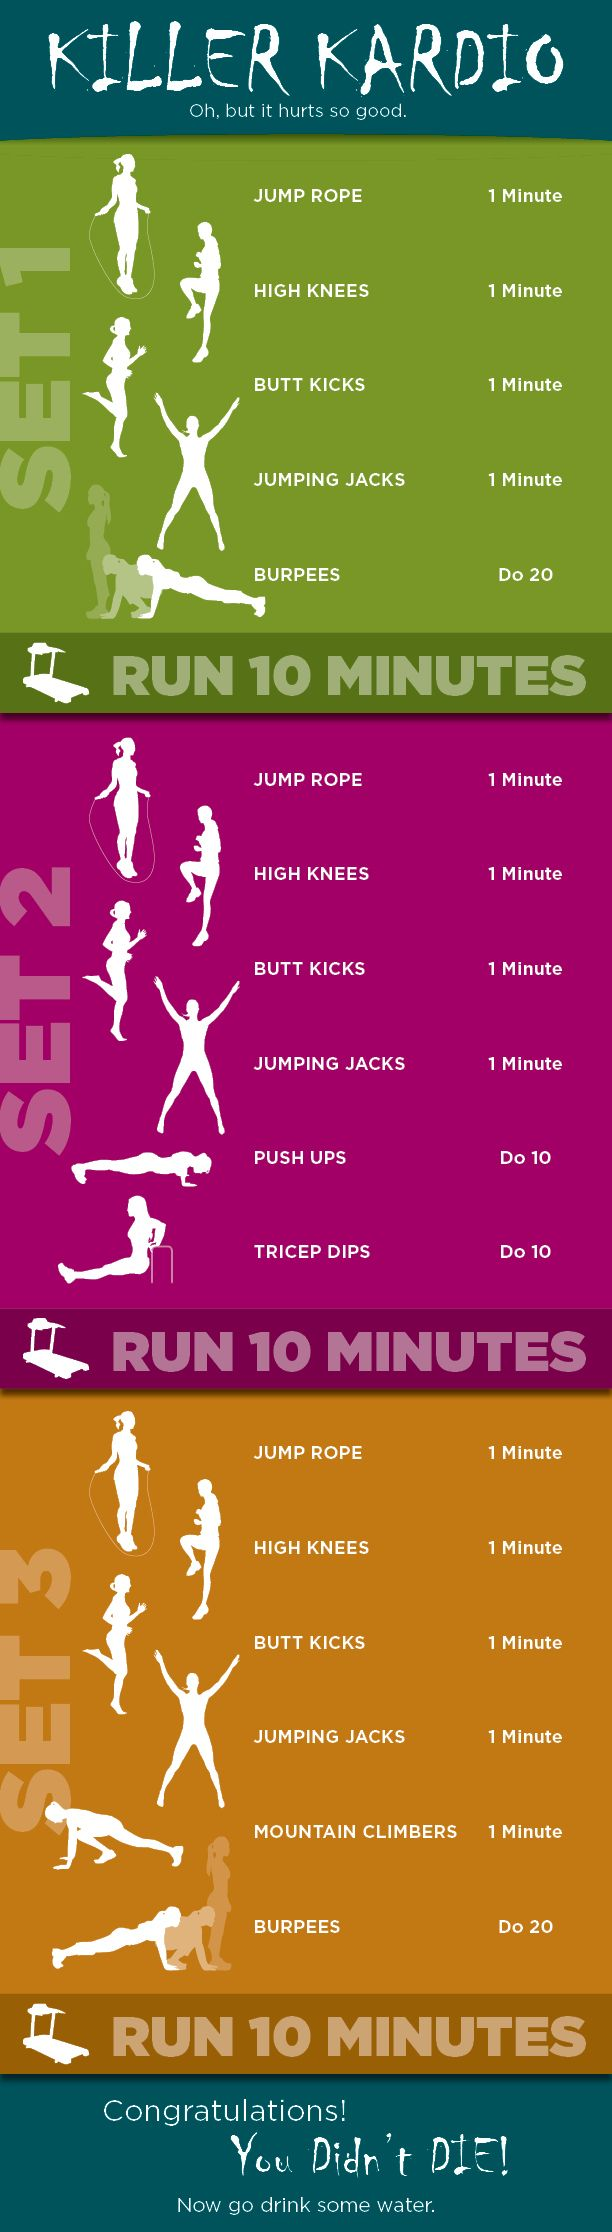 "Cardio workout! I basically pinned this just because it says ""Congratulations! You"